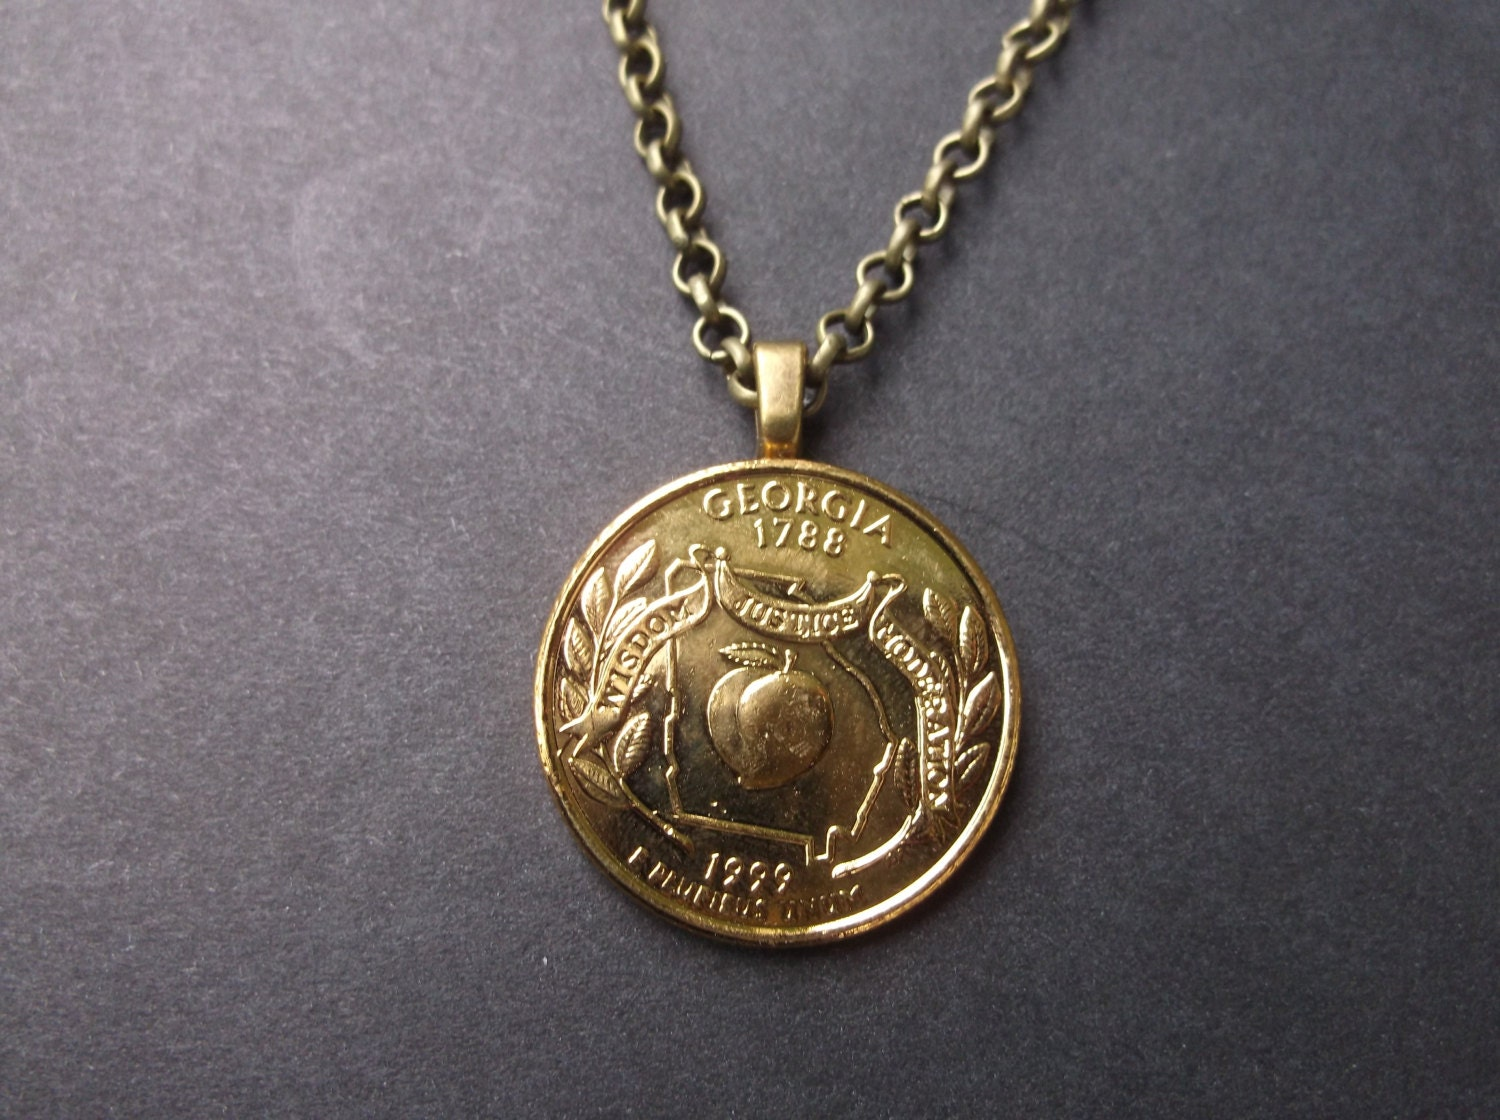 Georgia United States Gold Colored Quarter Coin Necklace